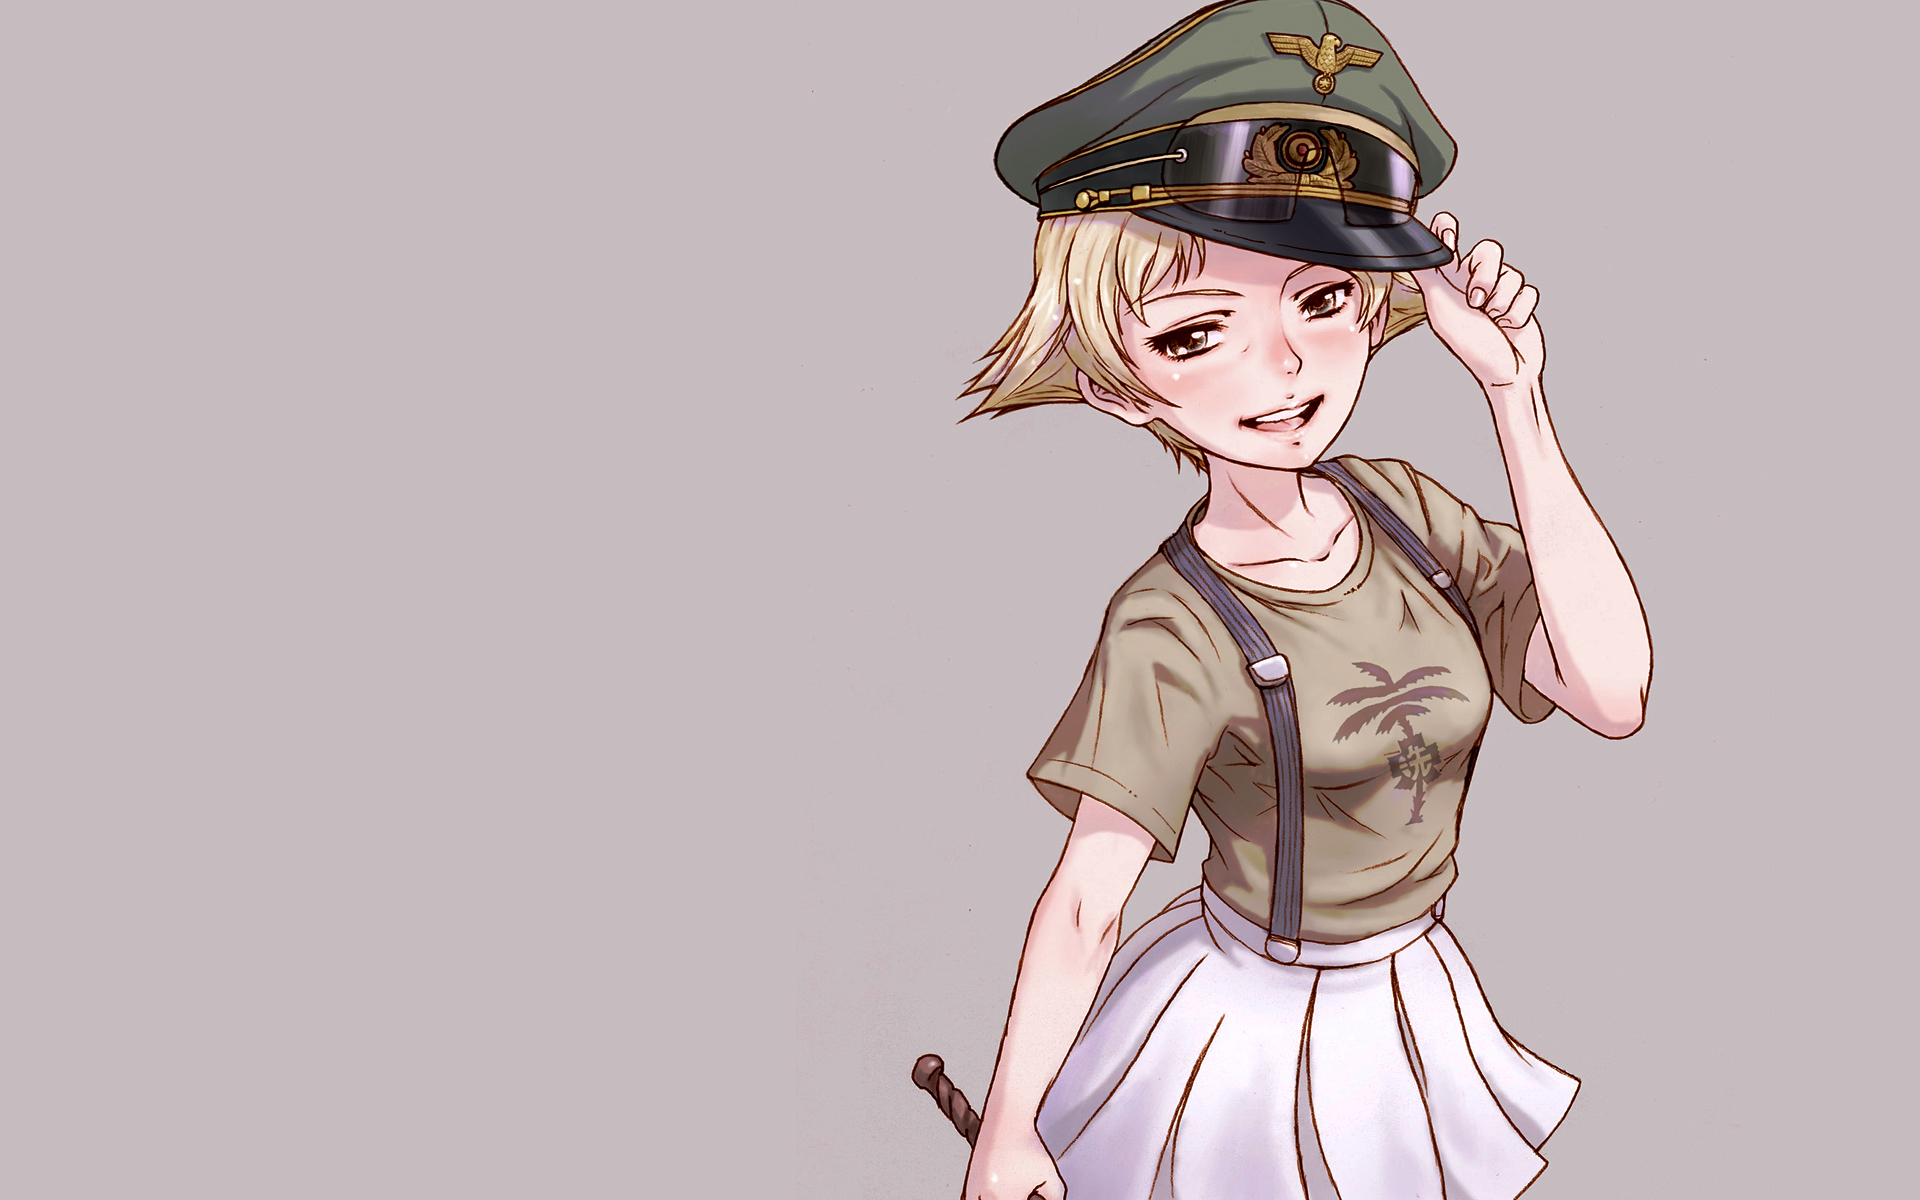 Girls Und Panzer Hd Wallpaper Girls Und Panzer Full Hd Wallpaper And Background Image